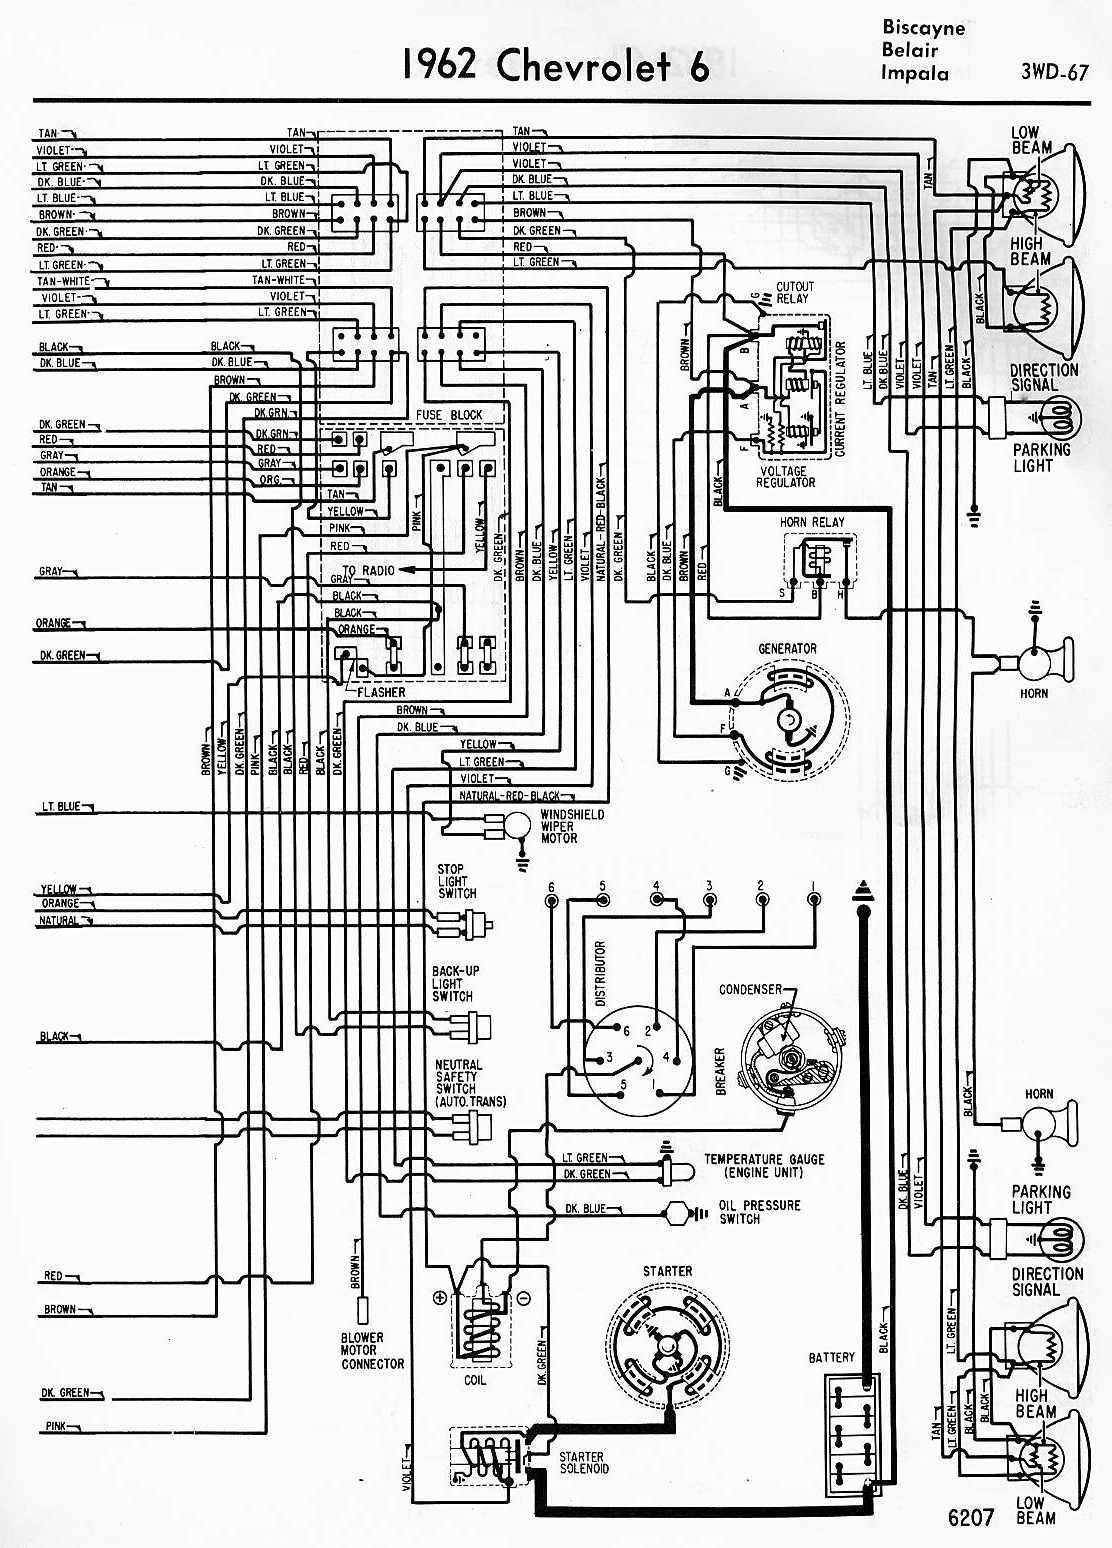 hight resolution of 1970 impala wiring harness wiring diagram week 1970 impala wiring harness manual e book 1970 impala